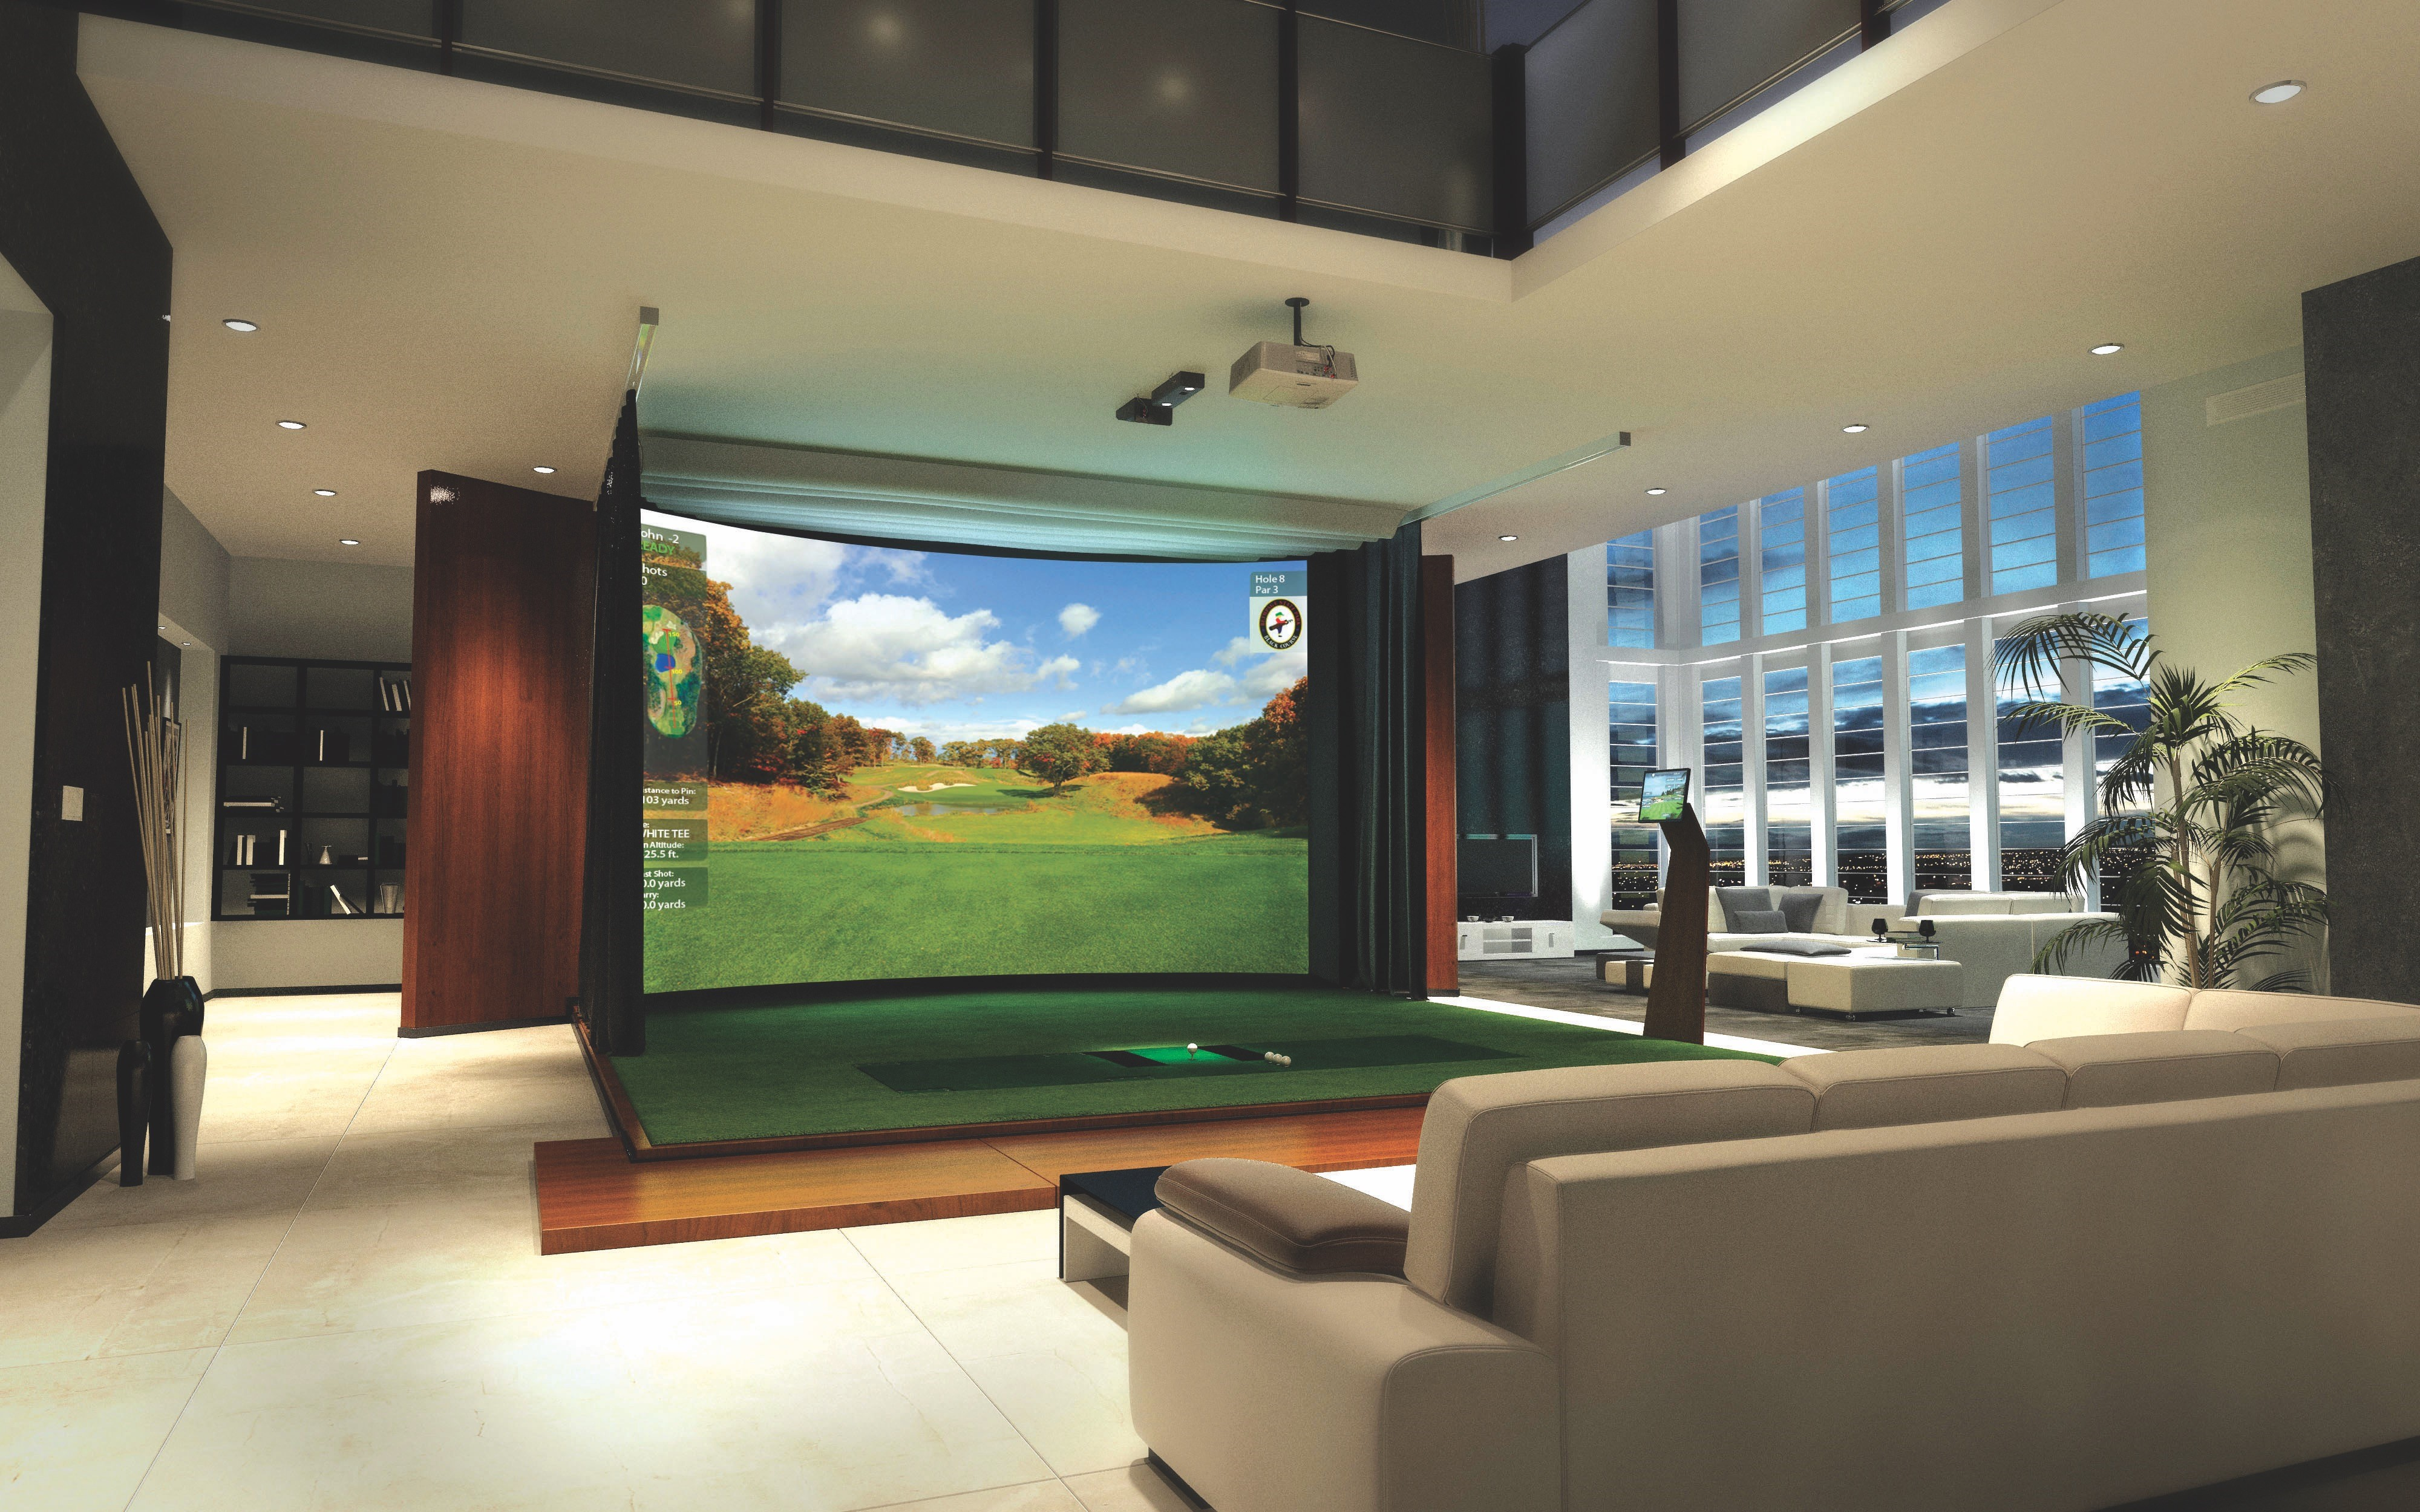 Top 4 Benefits of a Golf Simulator for Your Home